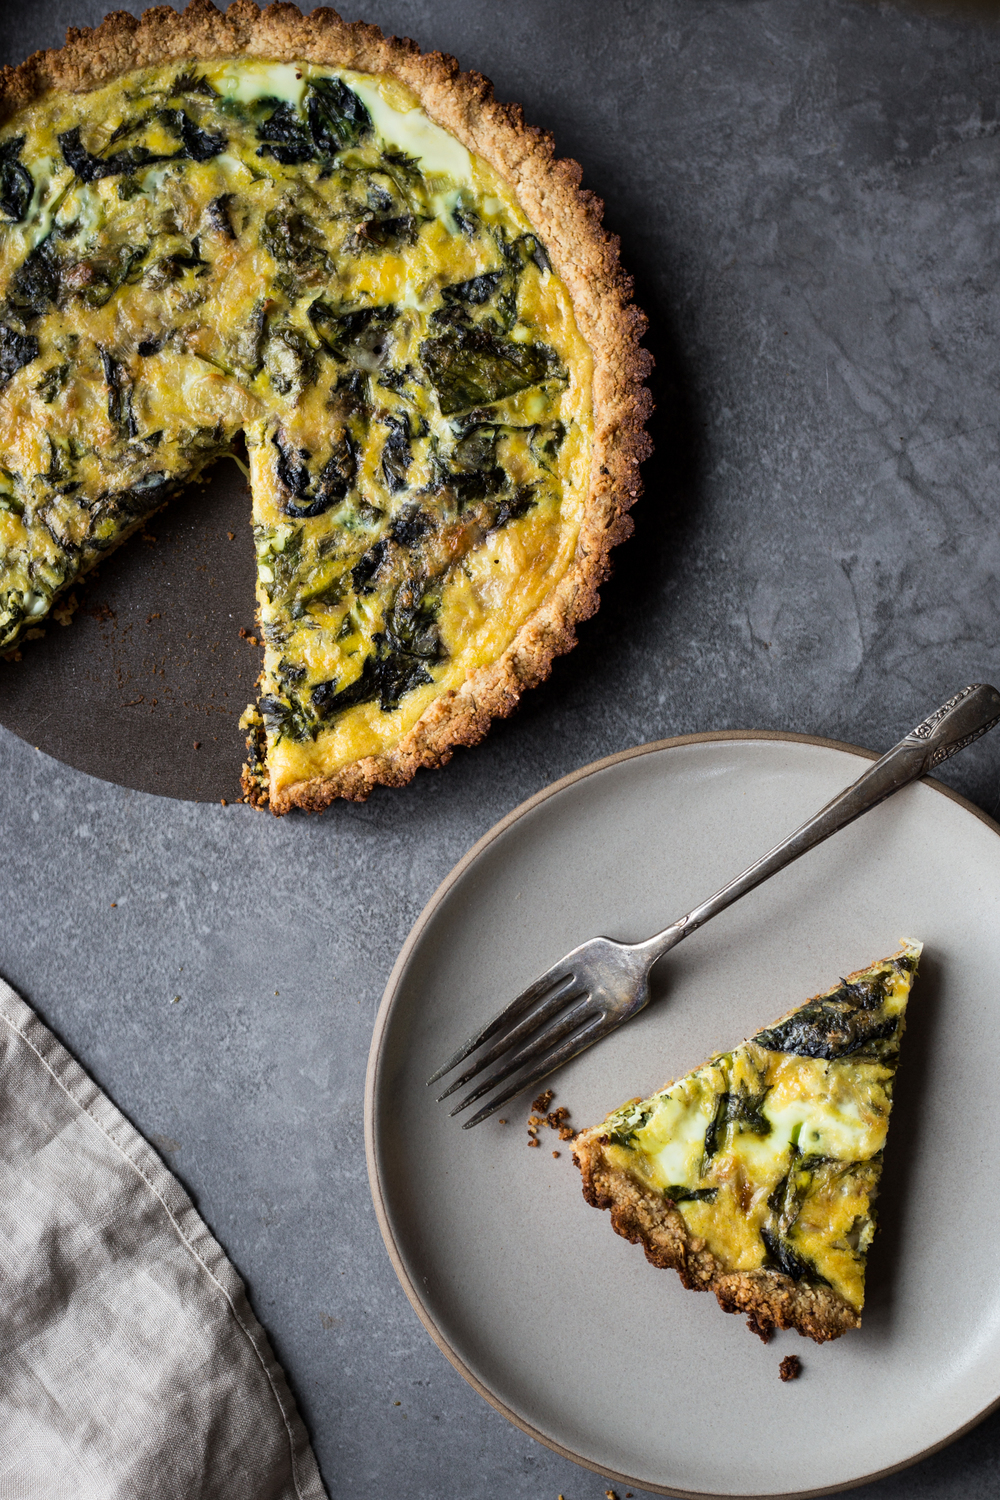 Mustard Green + Gruyere Quiche with Almond Flour Crust (use the spicy spring mix here!)